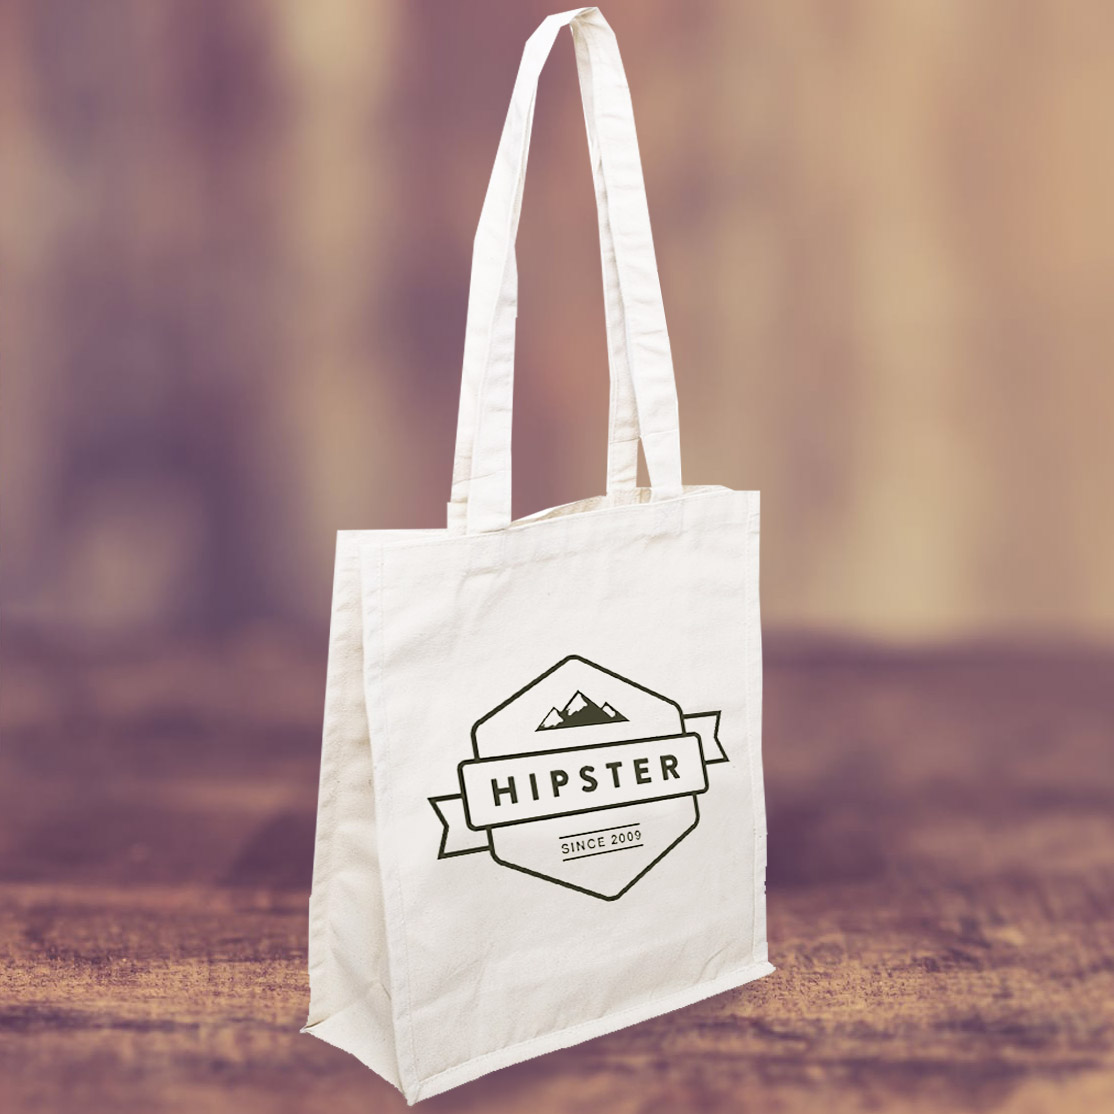 quality cotton shopping bags